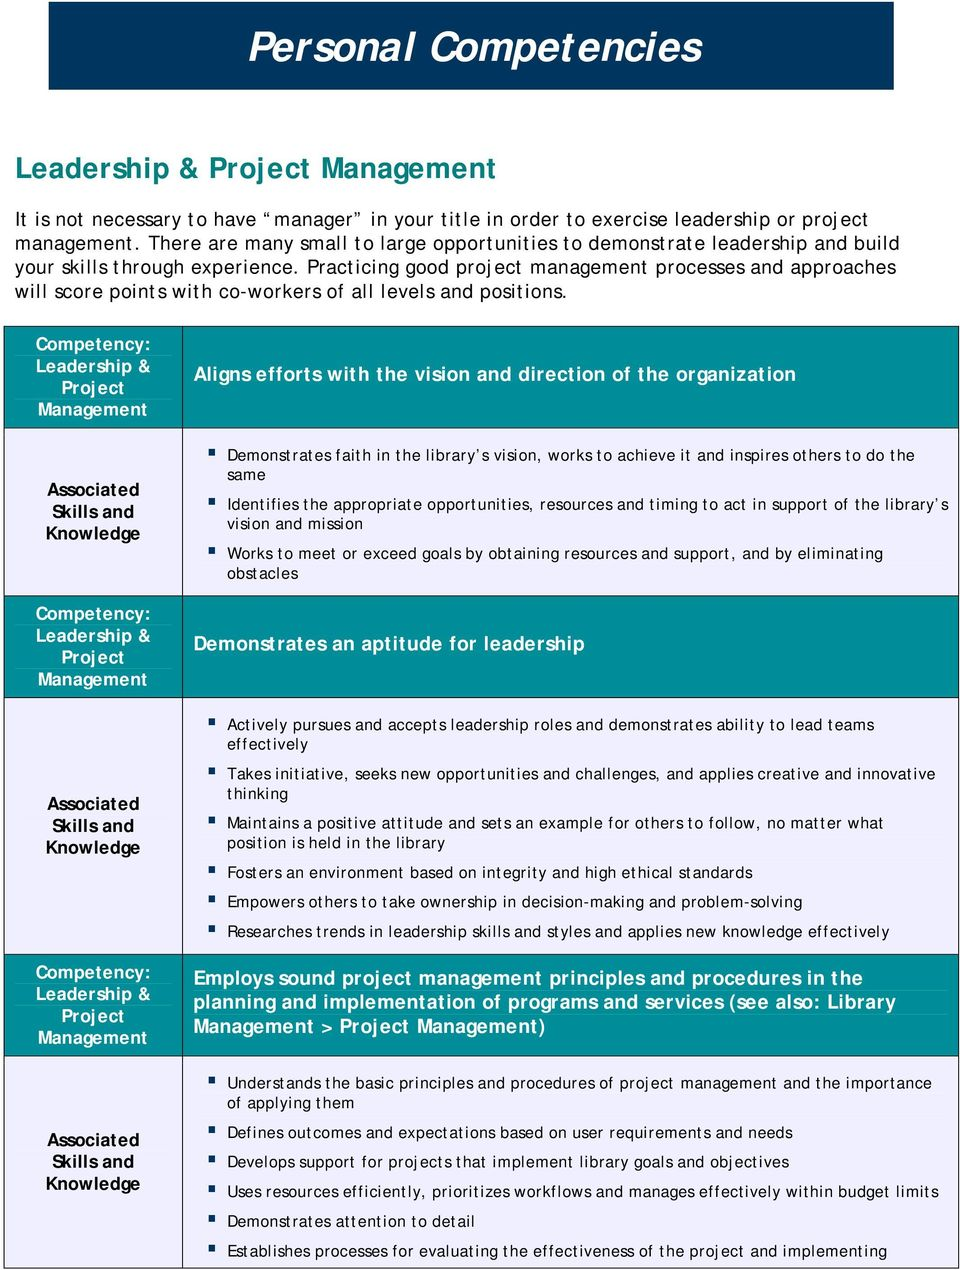 Practicing good project management processes and approaches will score points with co-workers of all levels and positions.